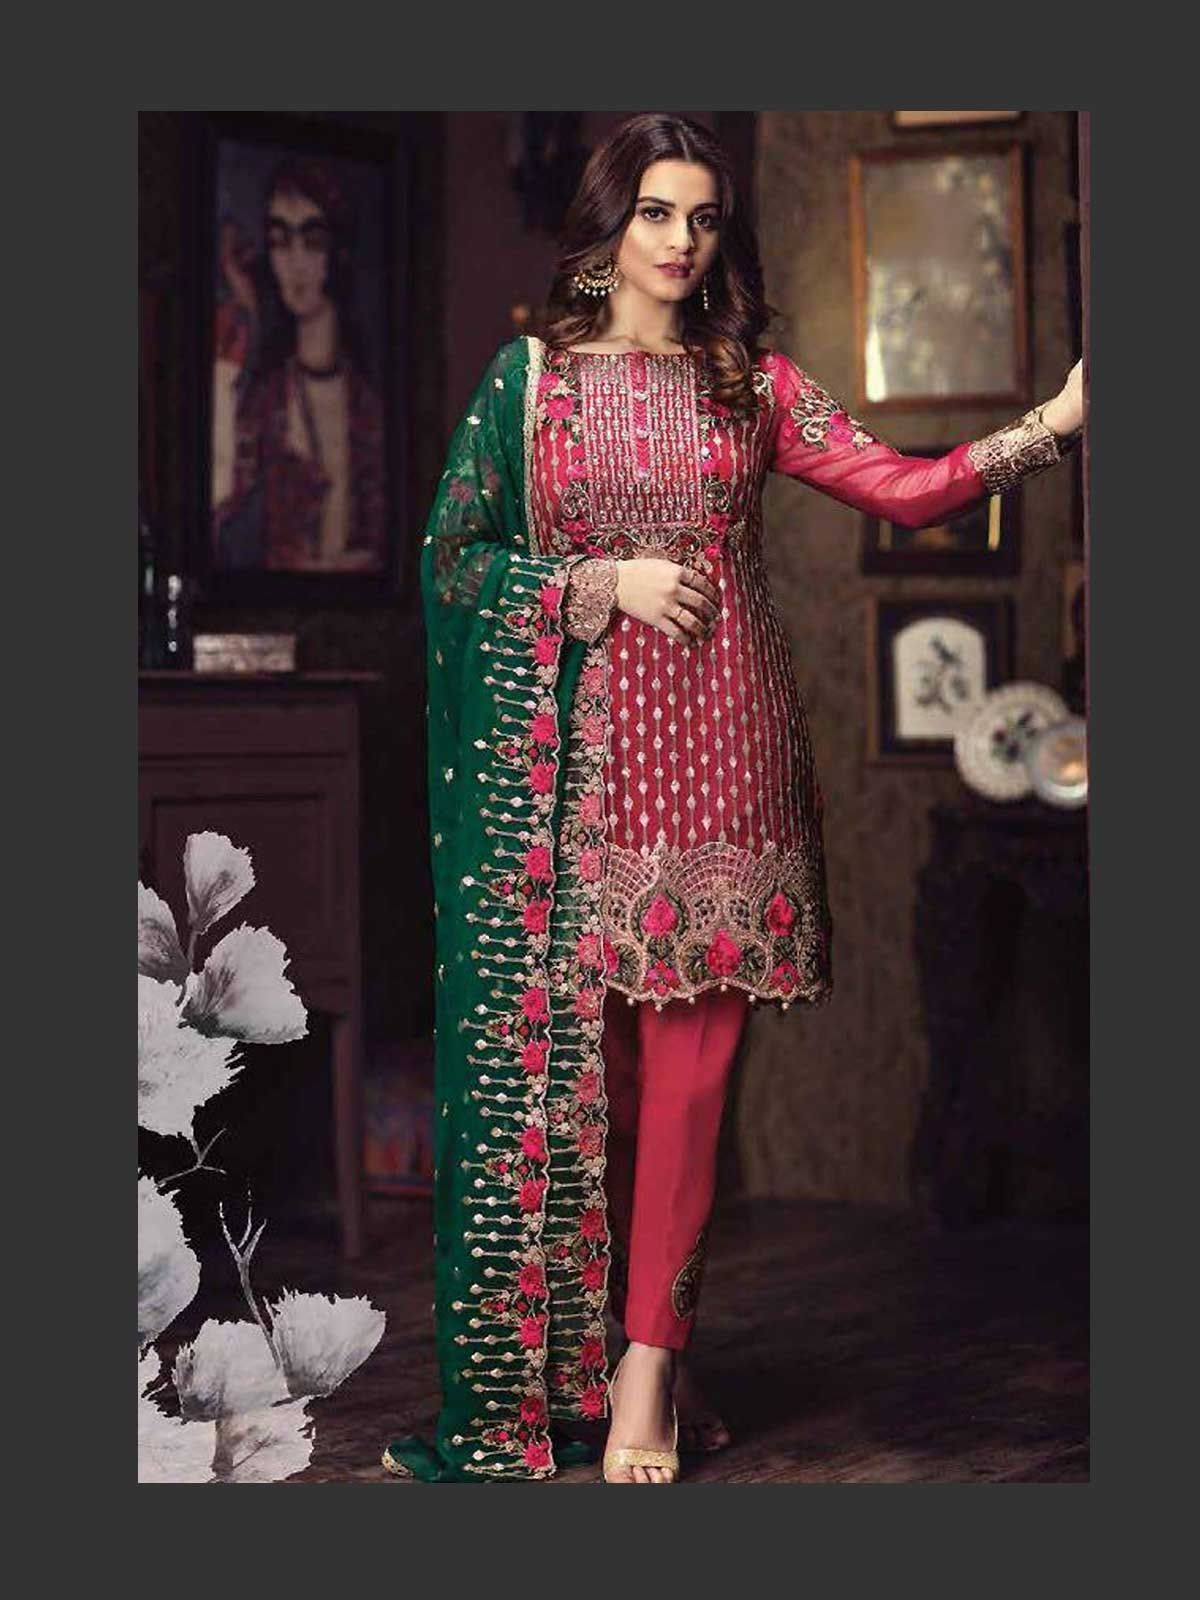 98453955b707 Buy beautiful red pakistani wedding dress online in various shades and  designs for shaadi season. Shop the latest trendy pakistani salwar kameez  for ...